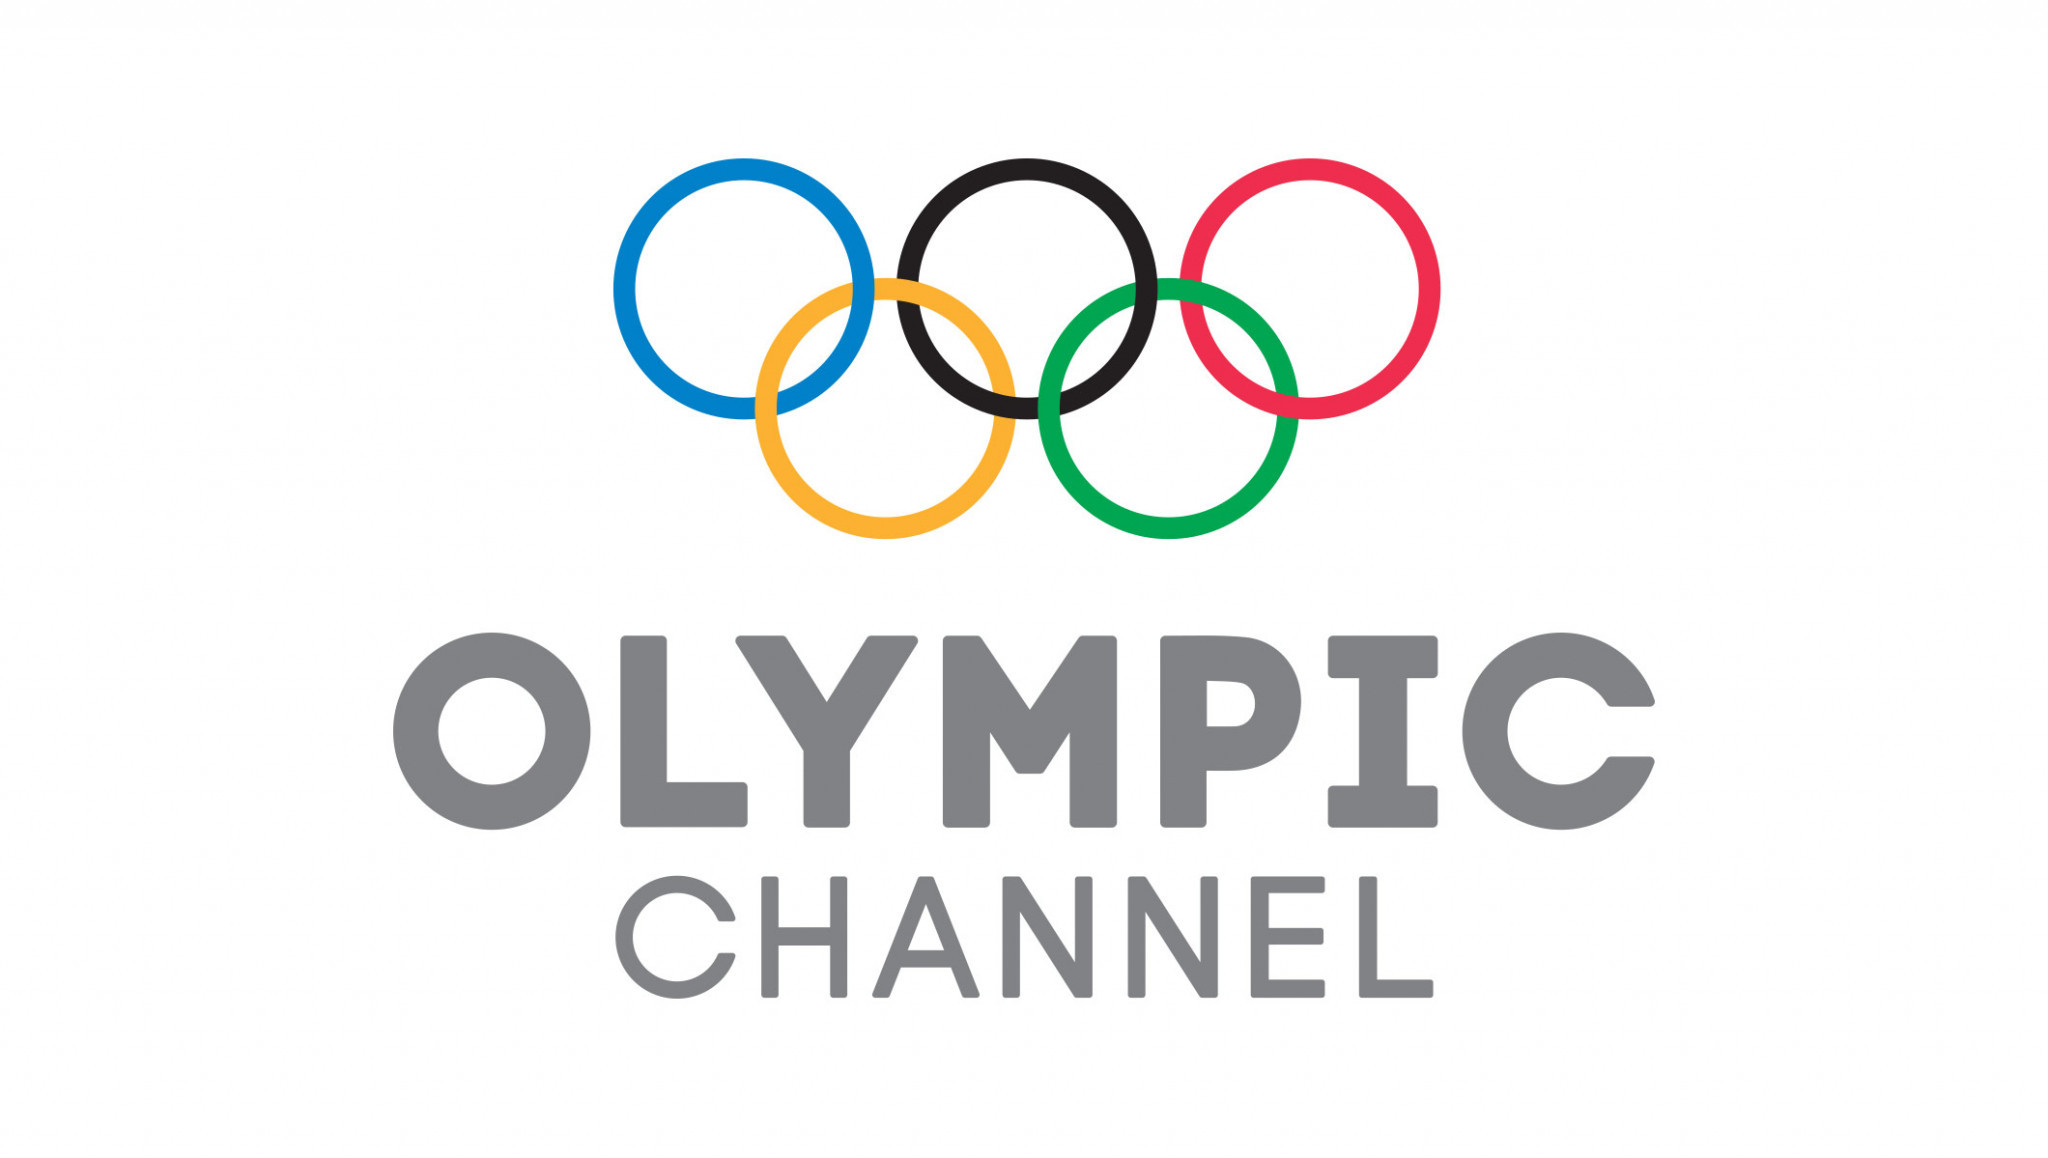 Olympic Channel to stream daily action from Minsk 2019 to Americas, Caribbean and Asia